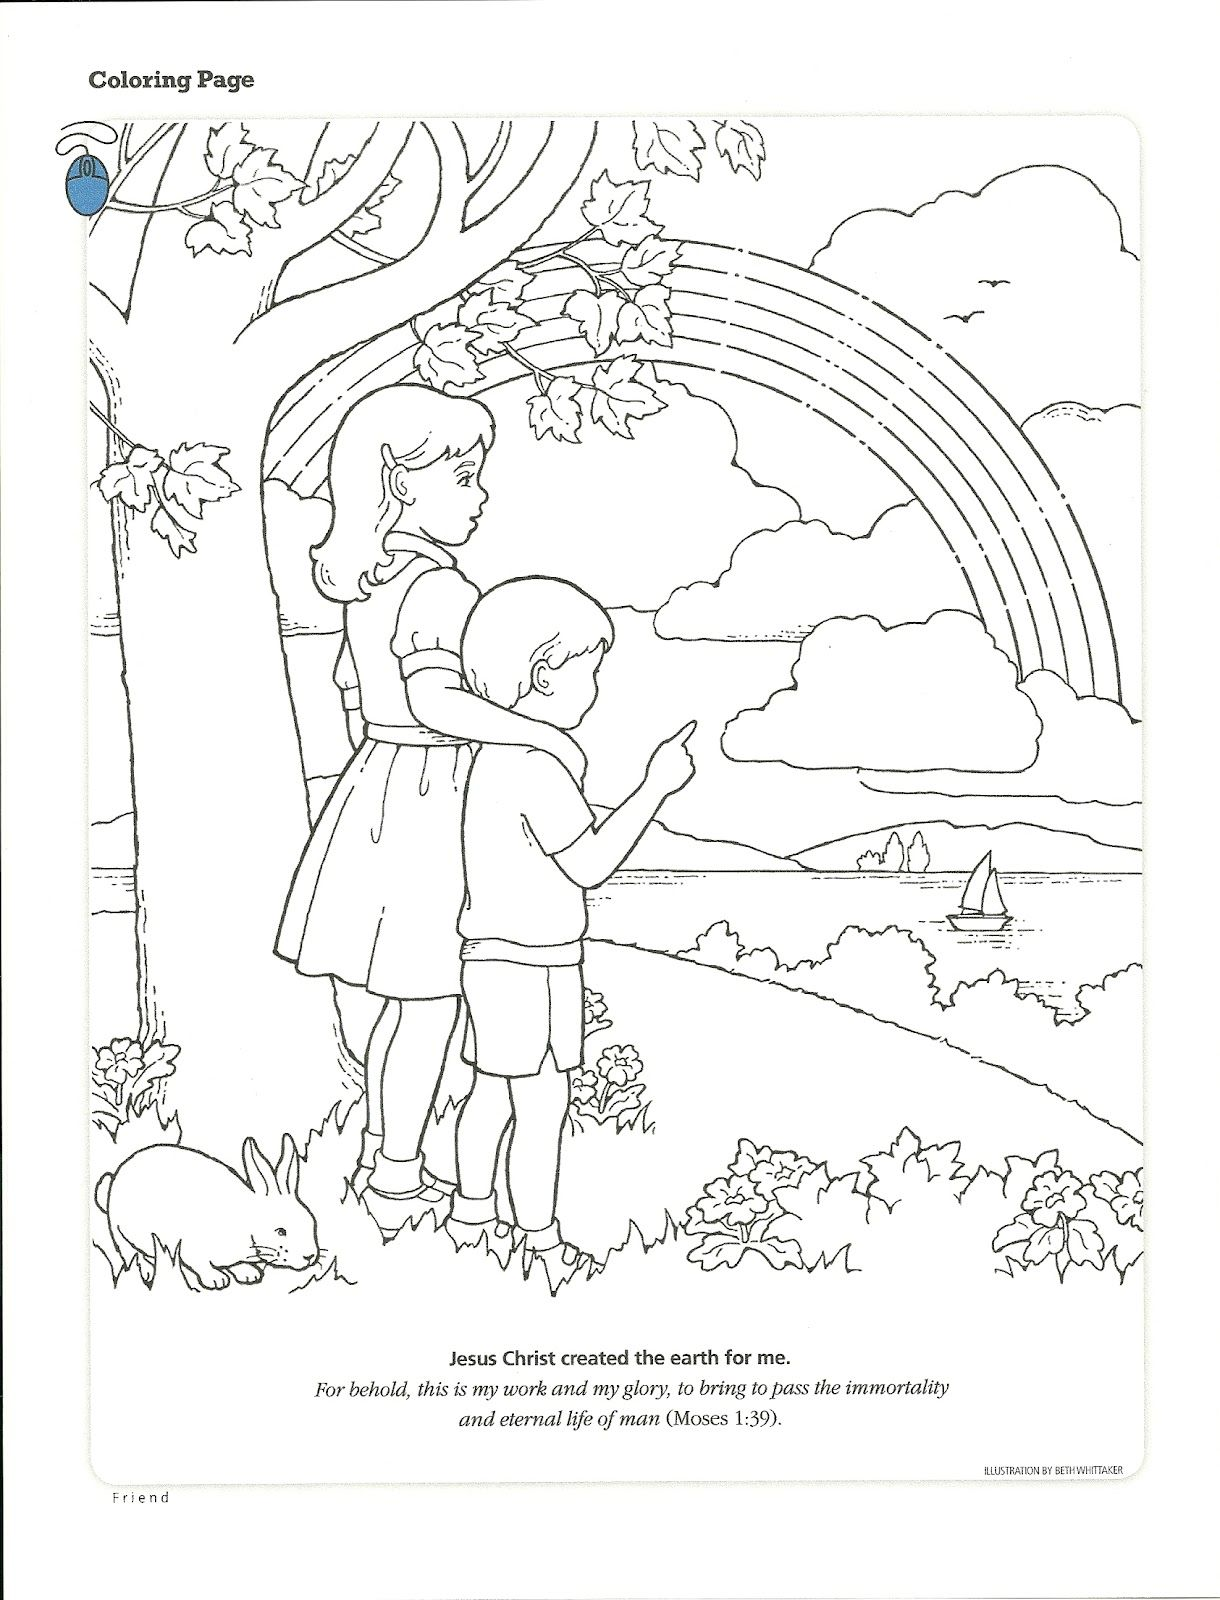 LDS Primary Coloring Pages Can Follow Jesus' Example